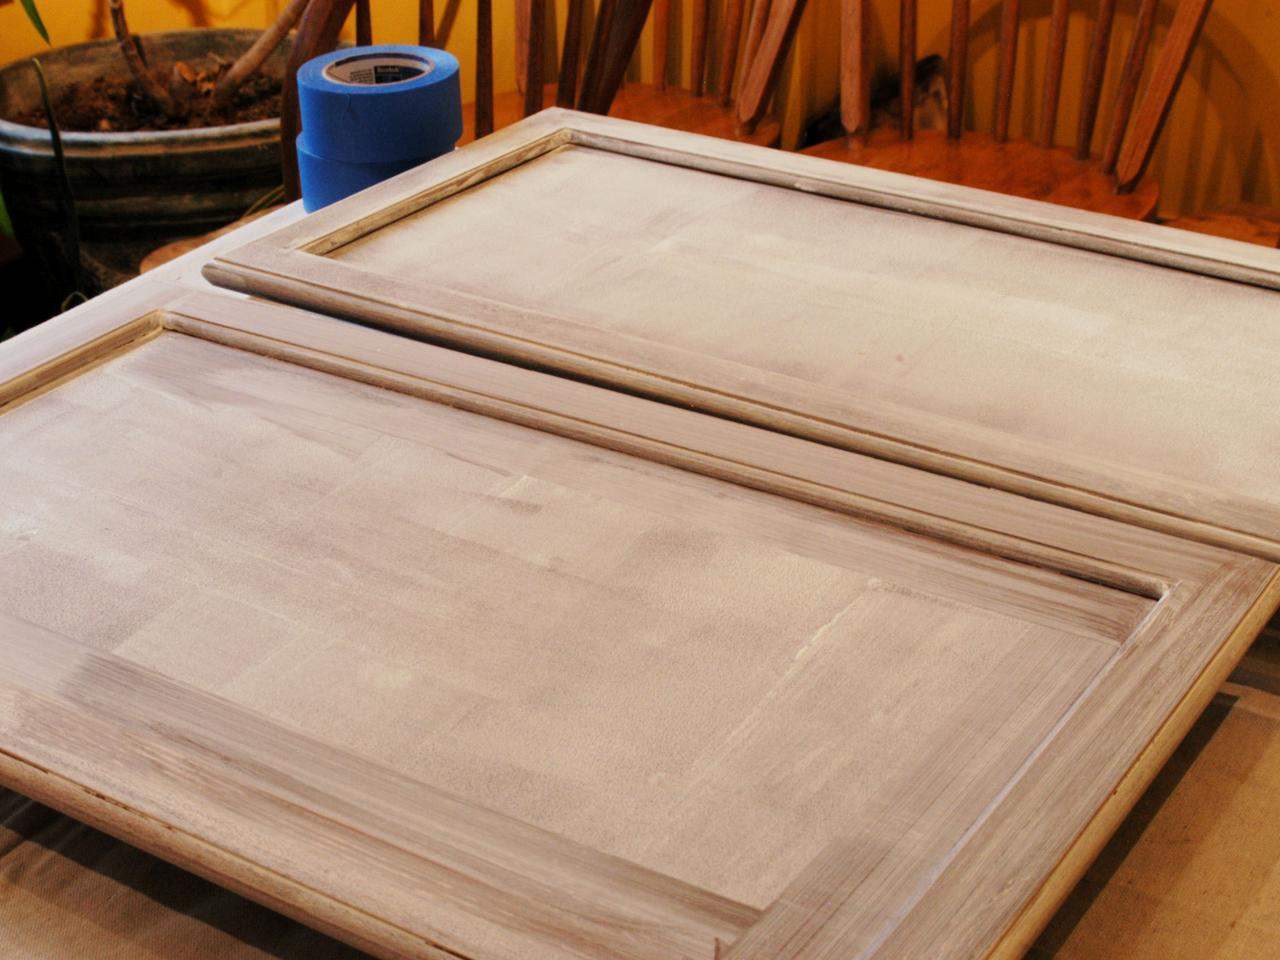 Tips for Prepping Cabinets for Paint | Dengarden